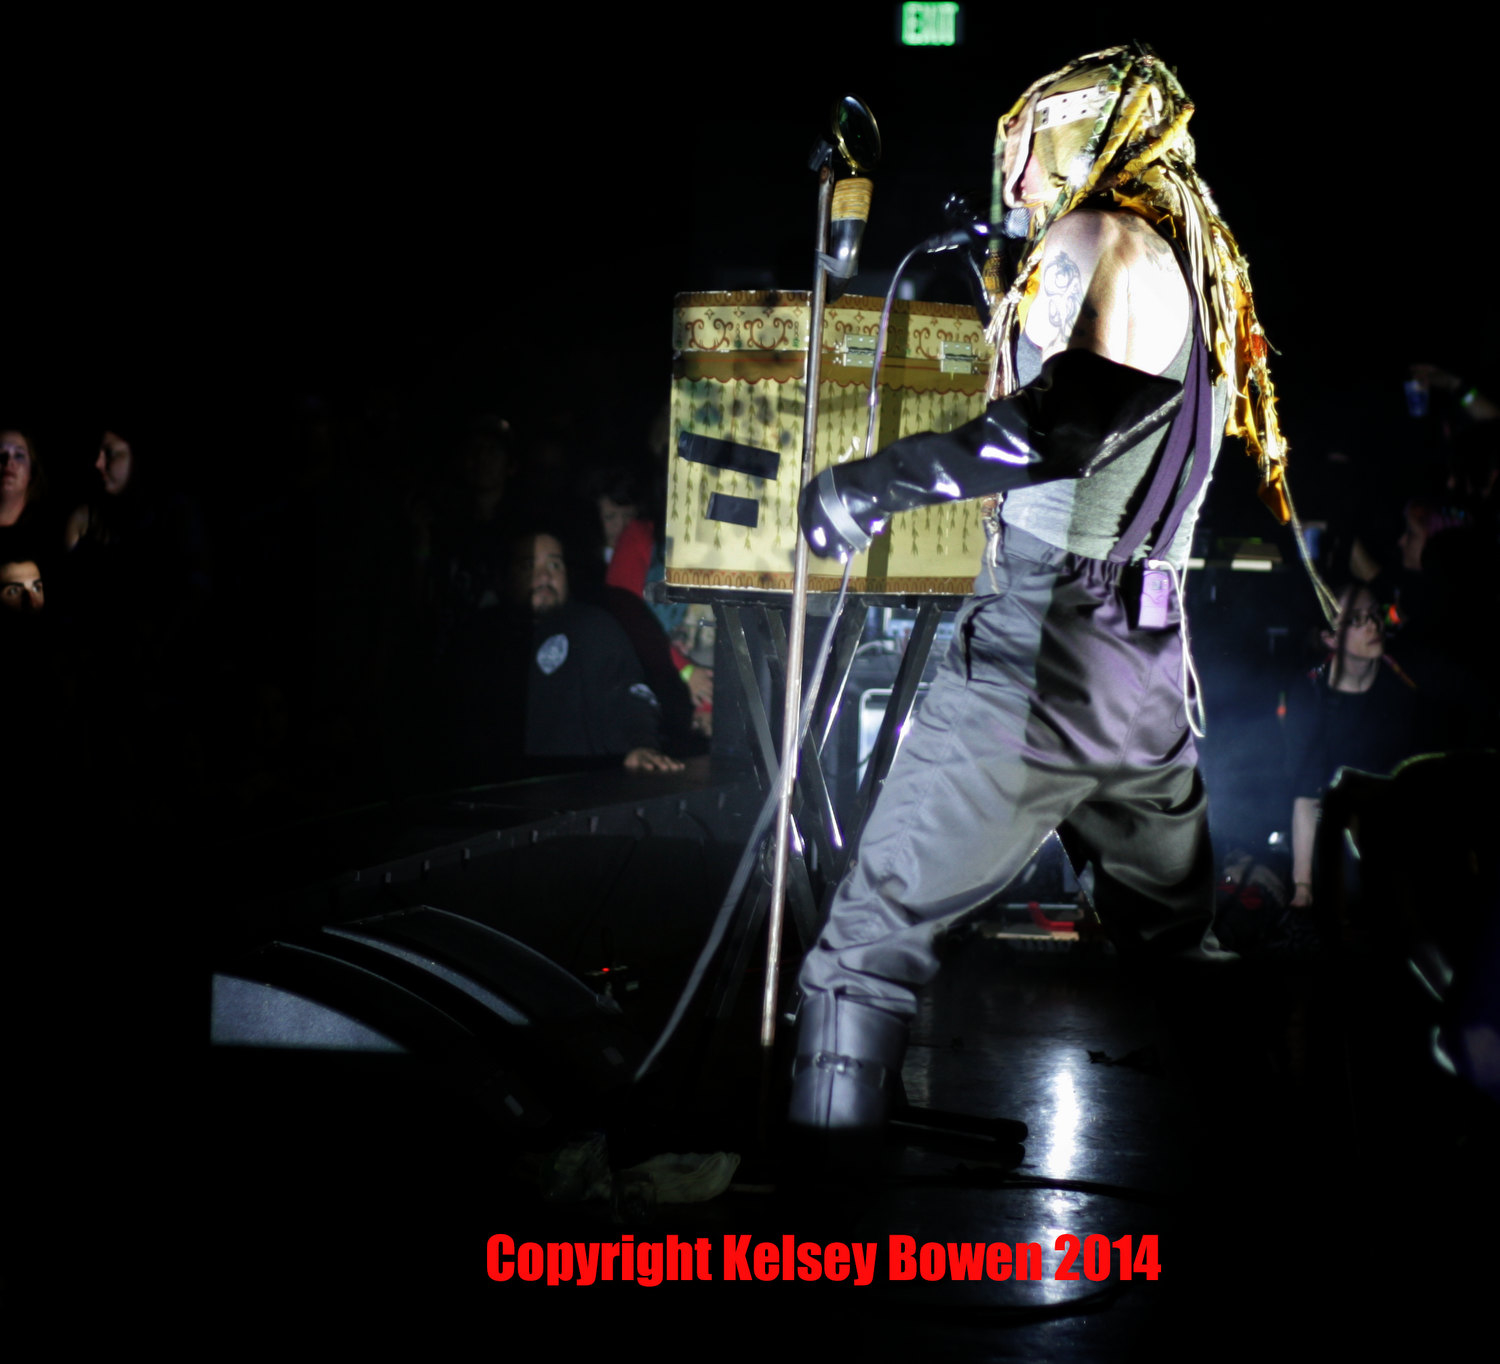 Skinny Puppy at The Observatory